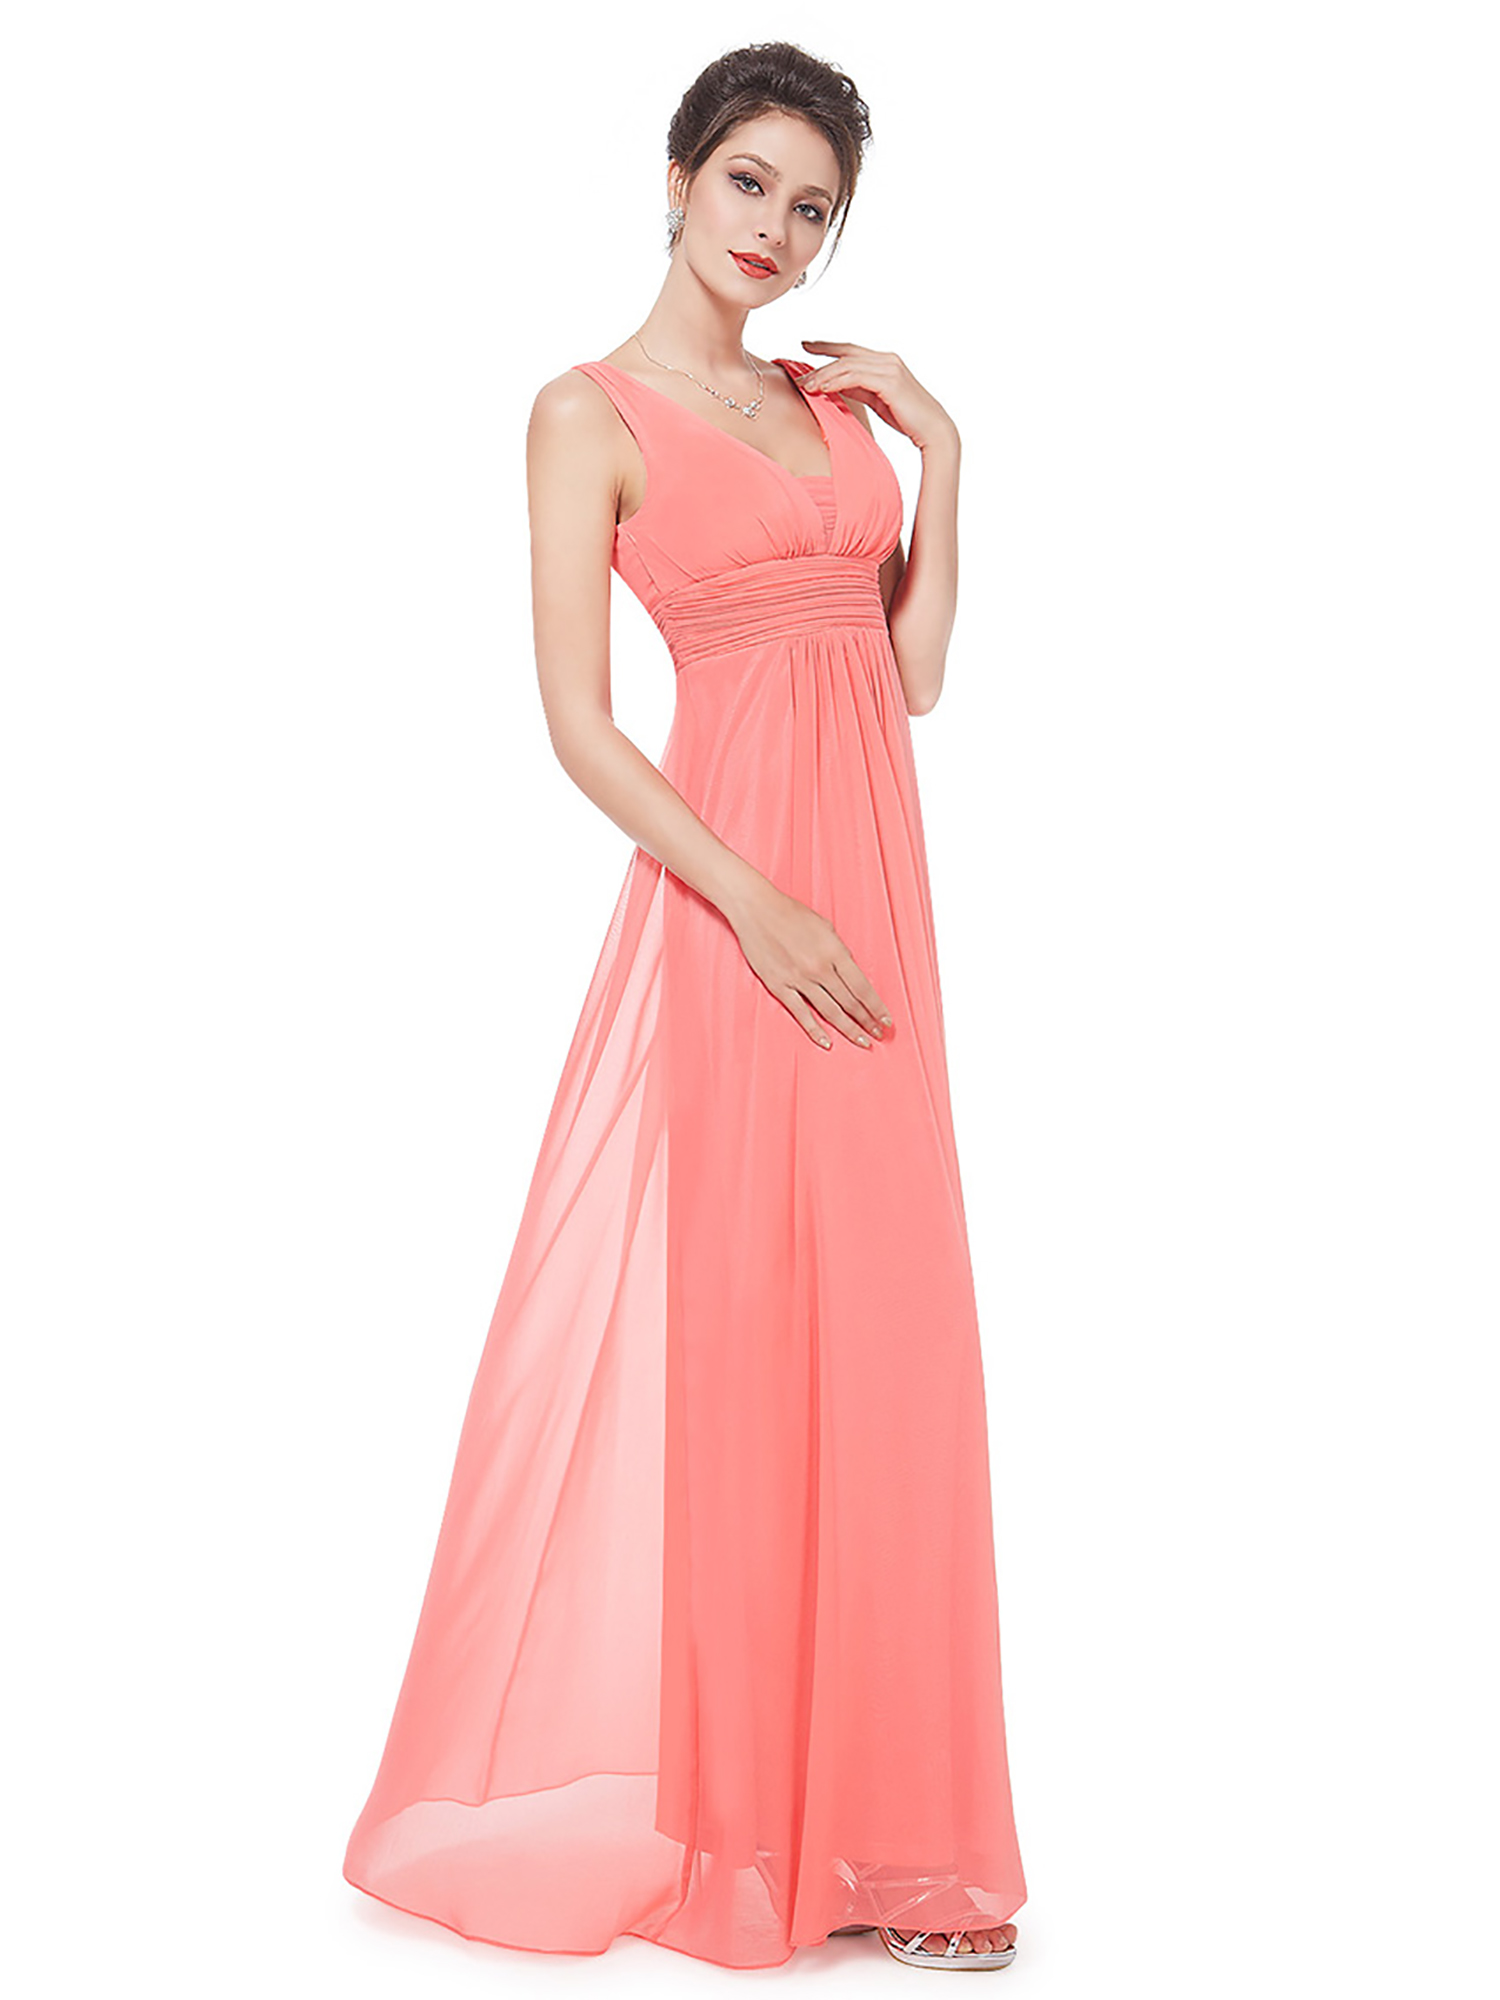 Ever-pretty - Ever-Pretty Women s Sexy Full Length V Neck Chiffon Summer  Black Tie Evening Party Wedding Guest Dresses for Women 08110 (Coral 8 US)  ... 2a45536dc